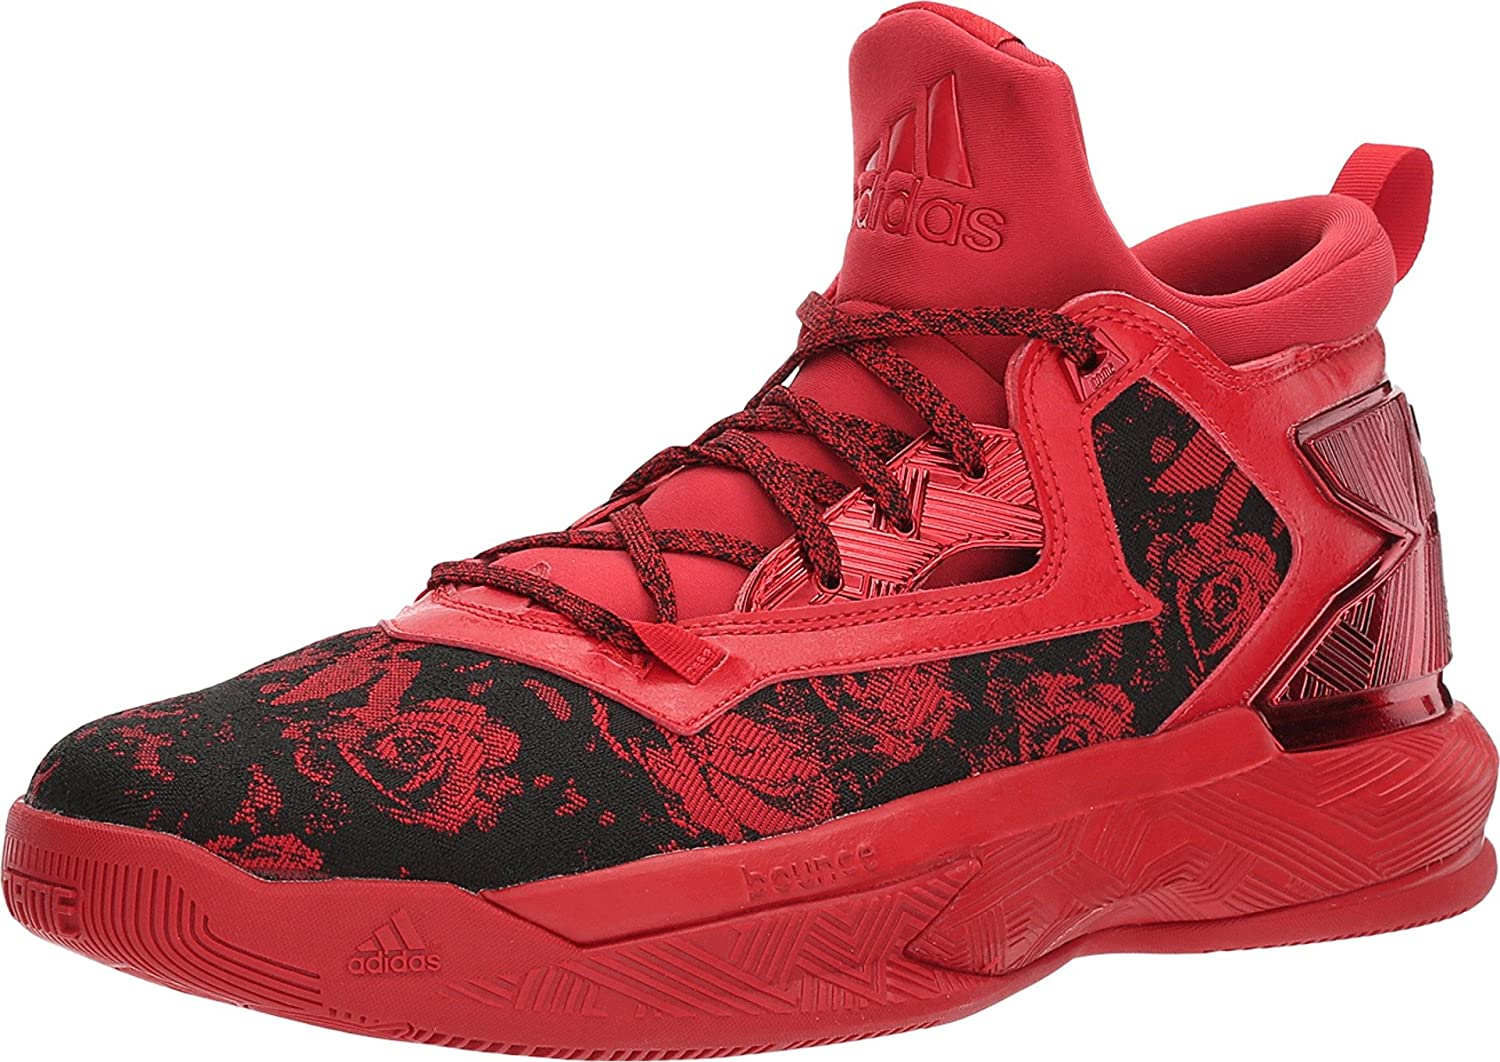 huge selection of f1757 cbcaf Amazon.com  adidas D Lillard 2 Mens Basketball Shoe  Basketb